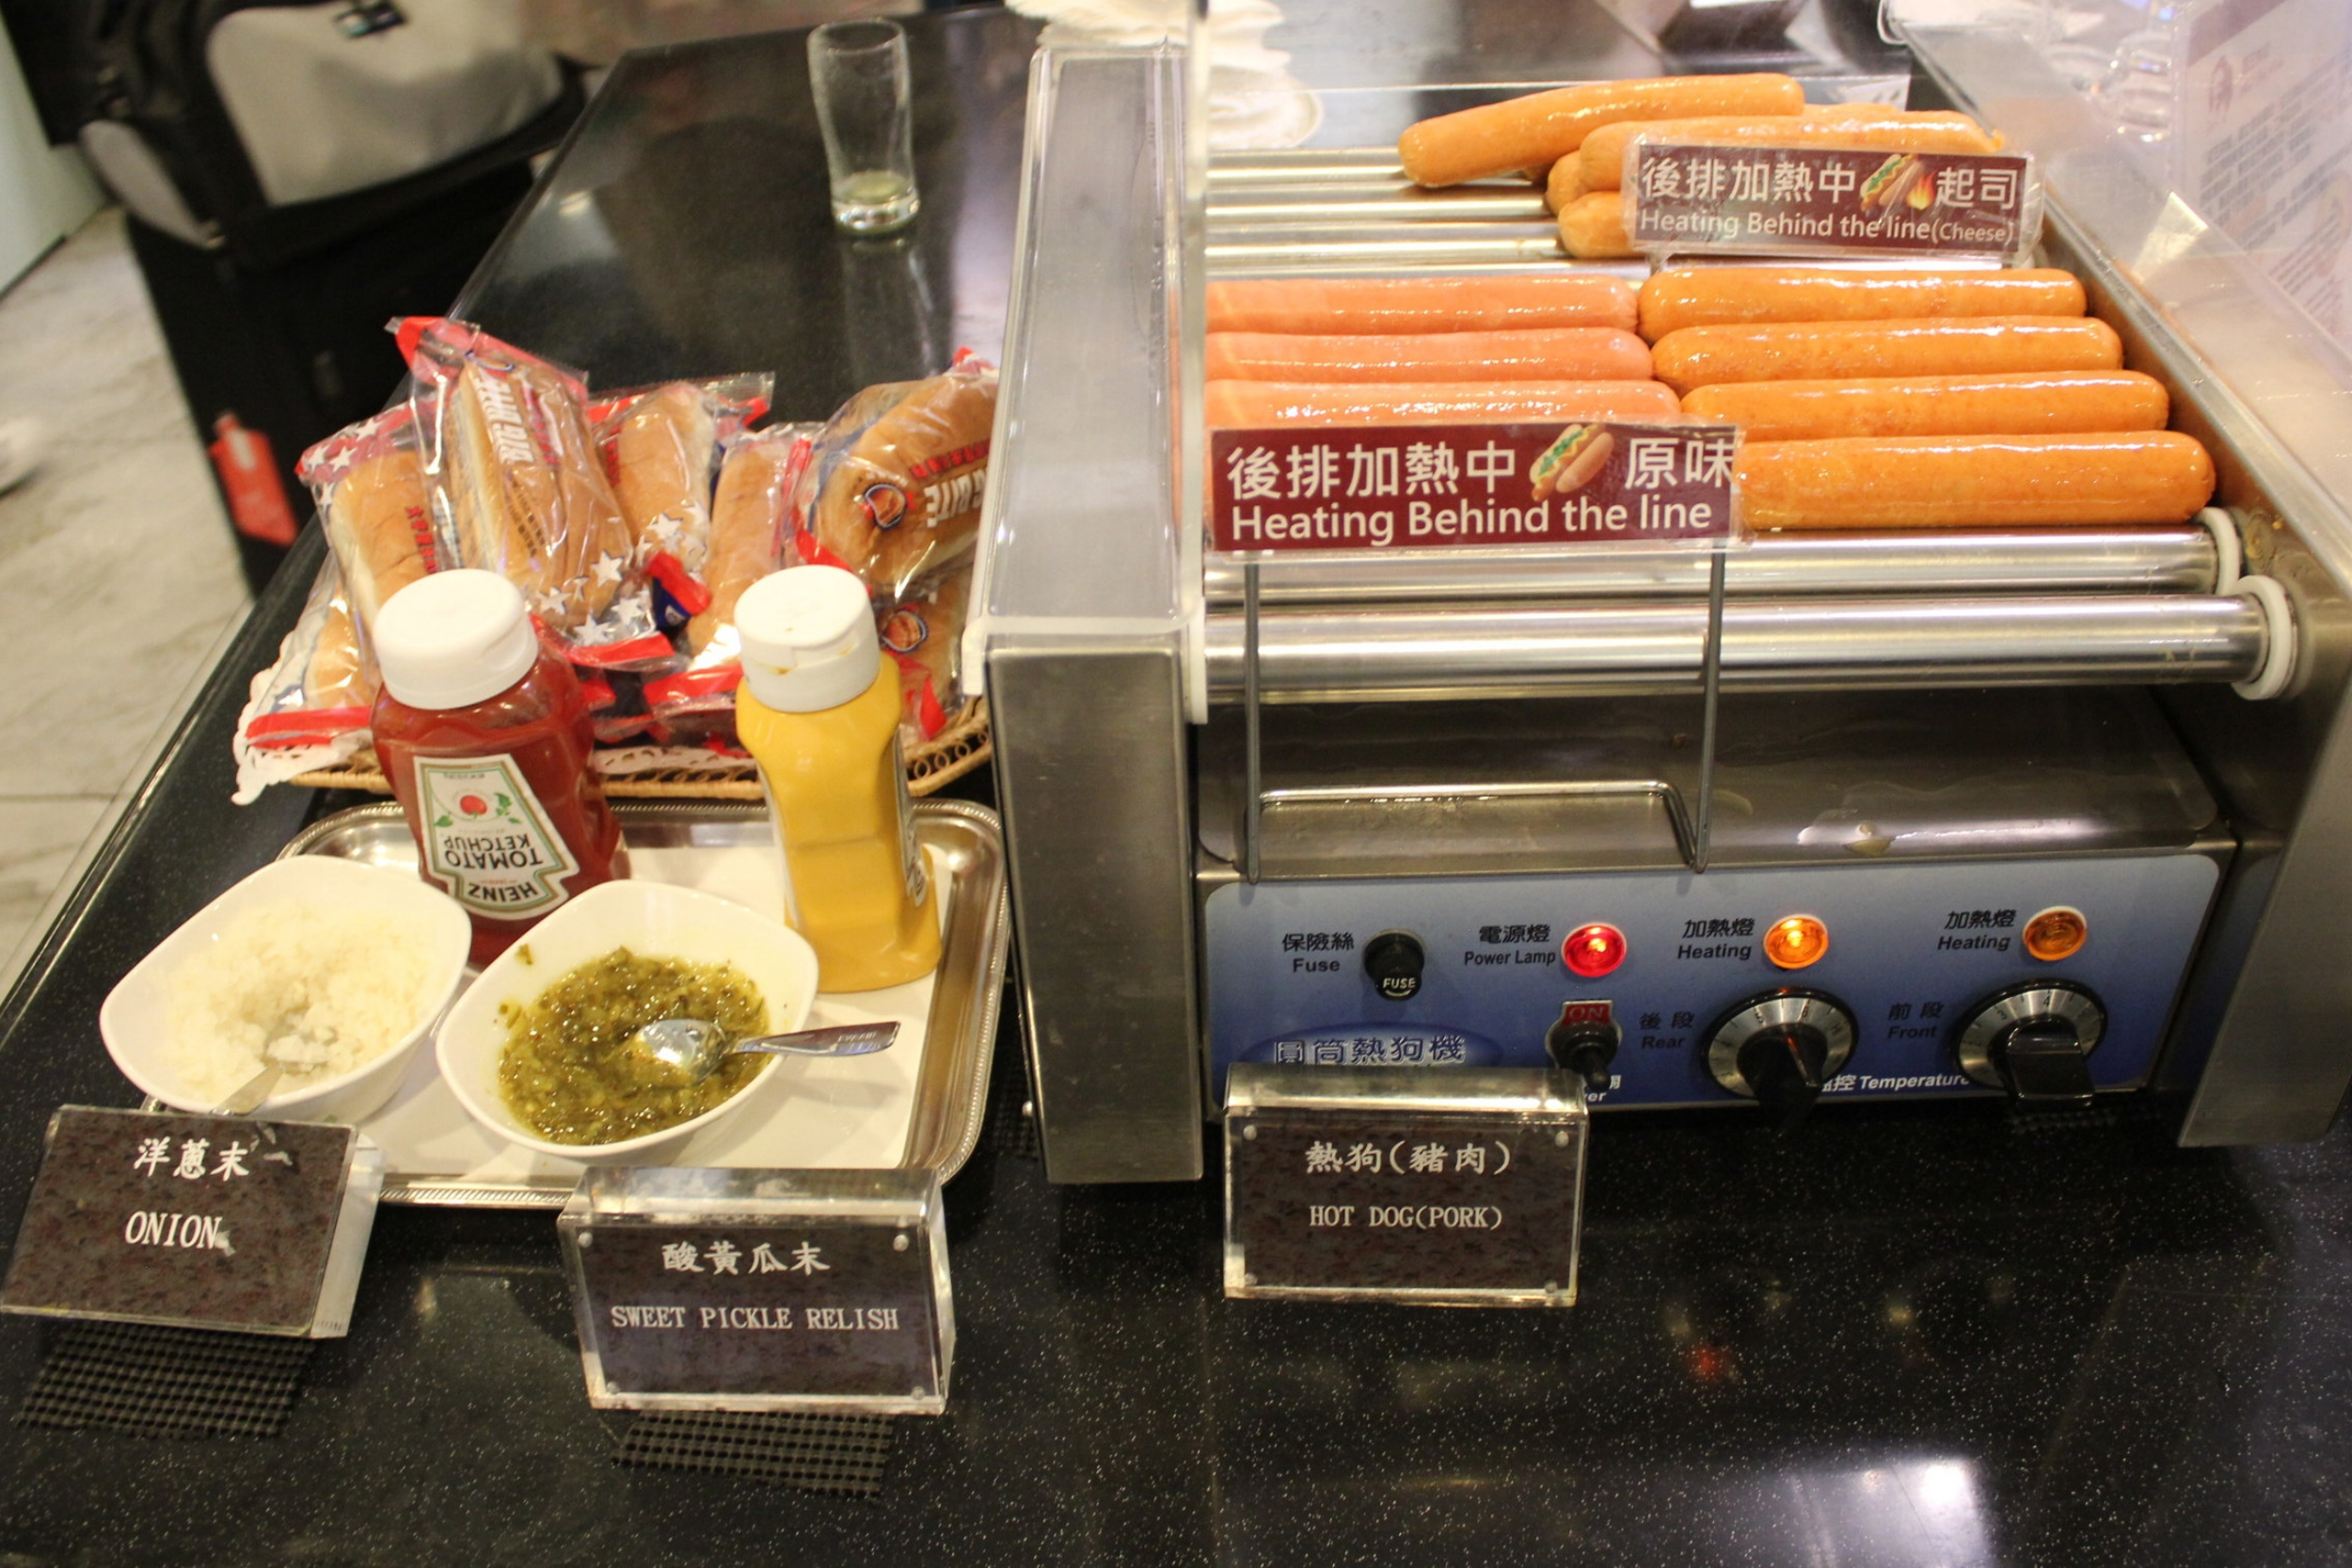 The Infinity Lounge by EVA Air – Hot dog roller